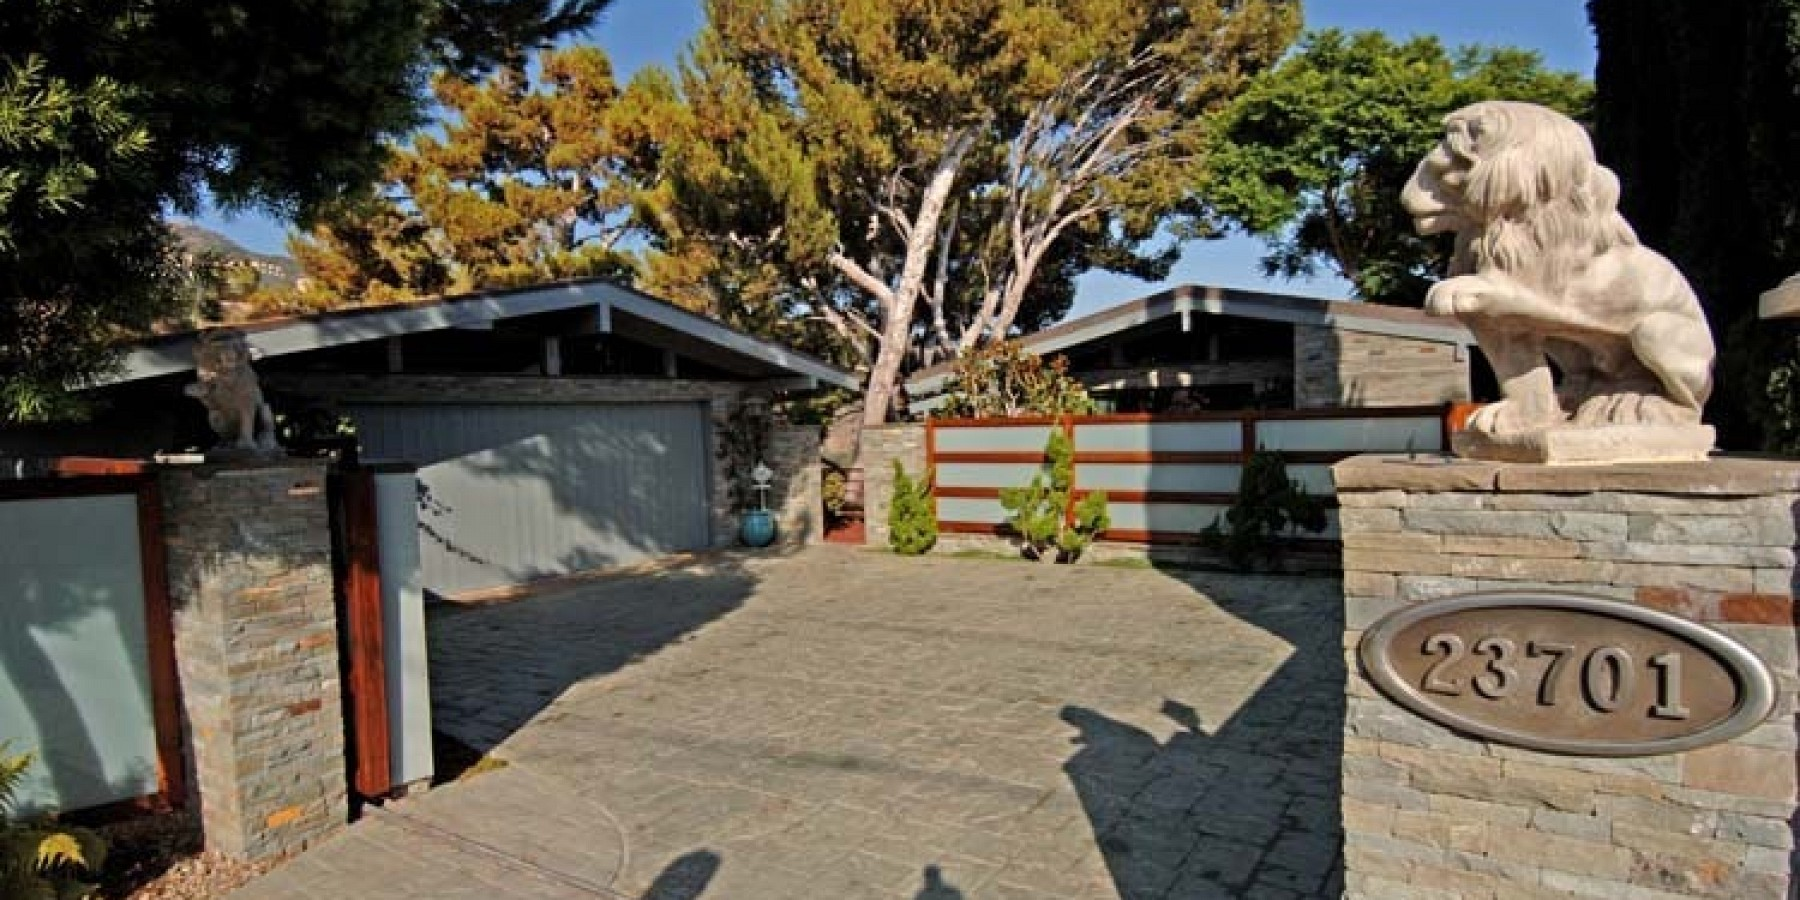 23701 HARBOR VISTA, MALIBU, CA 90265